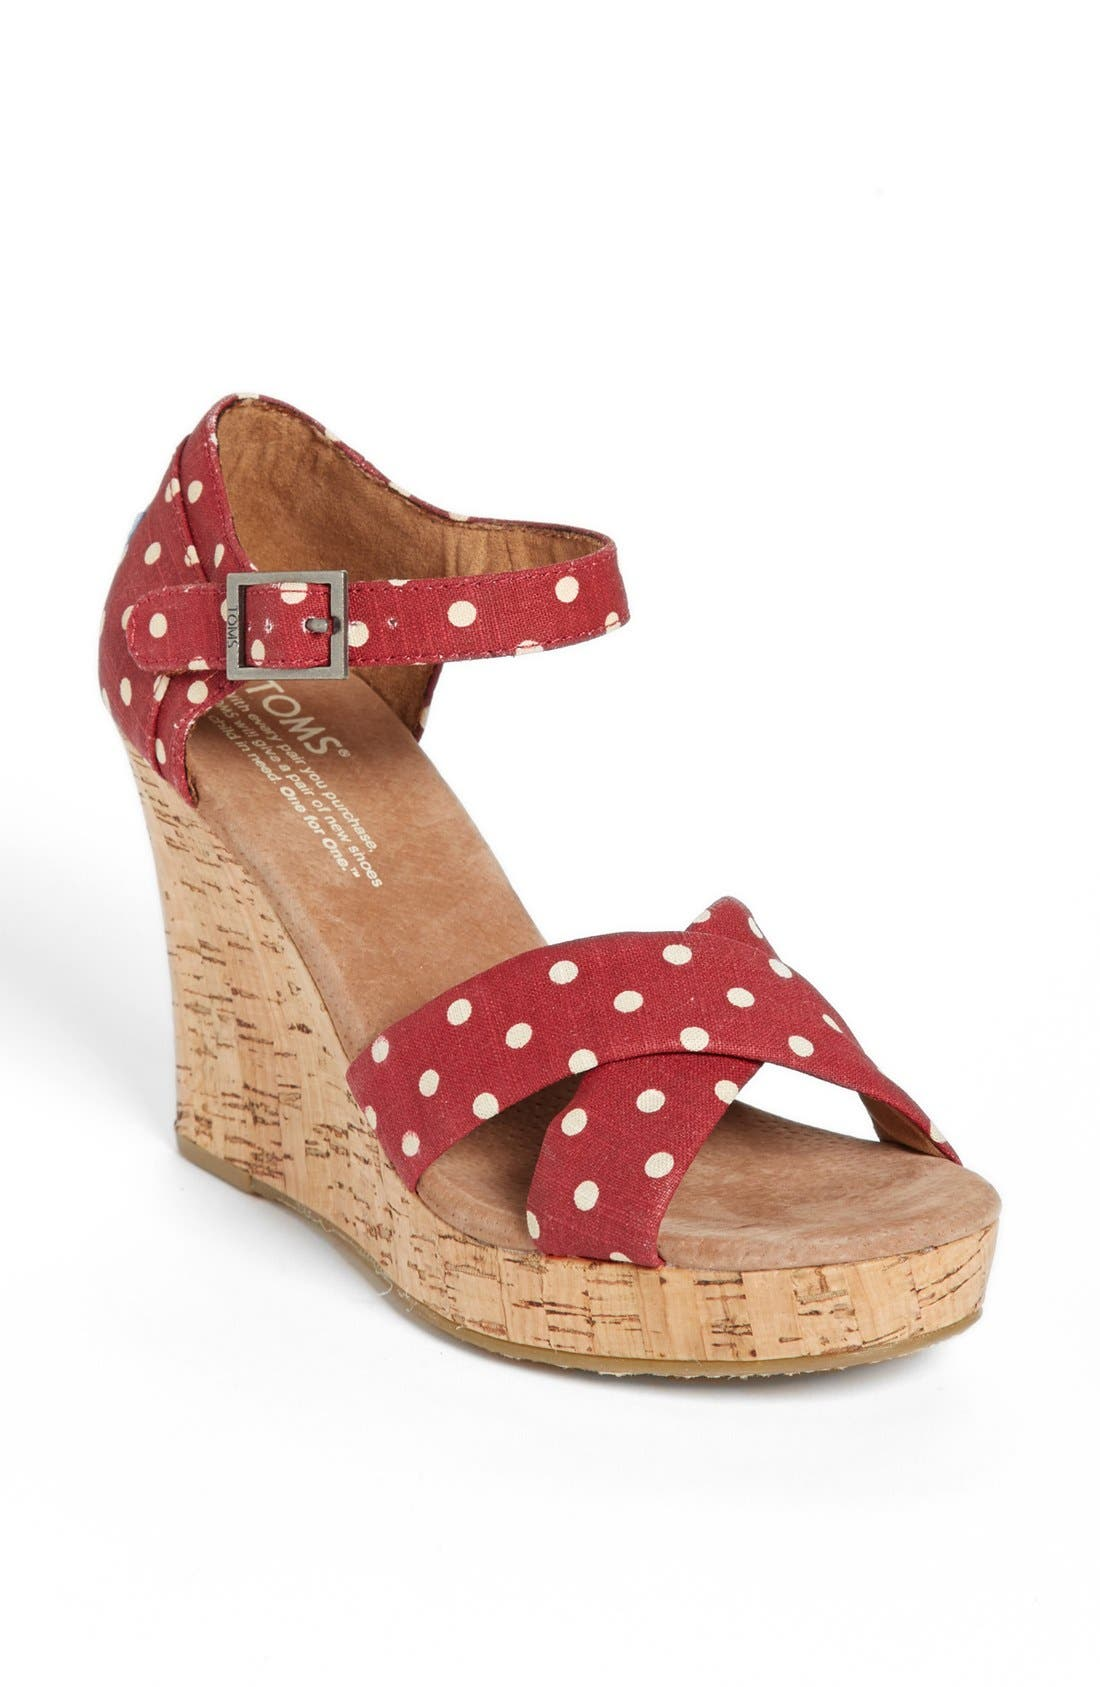 Alternate Image 1 Selected - TOMS Polka Dot Linen Woven Wedge Sandal